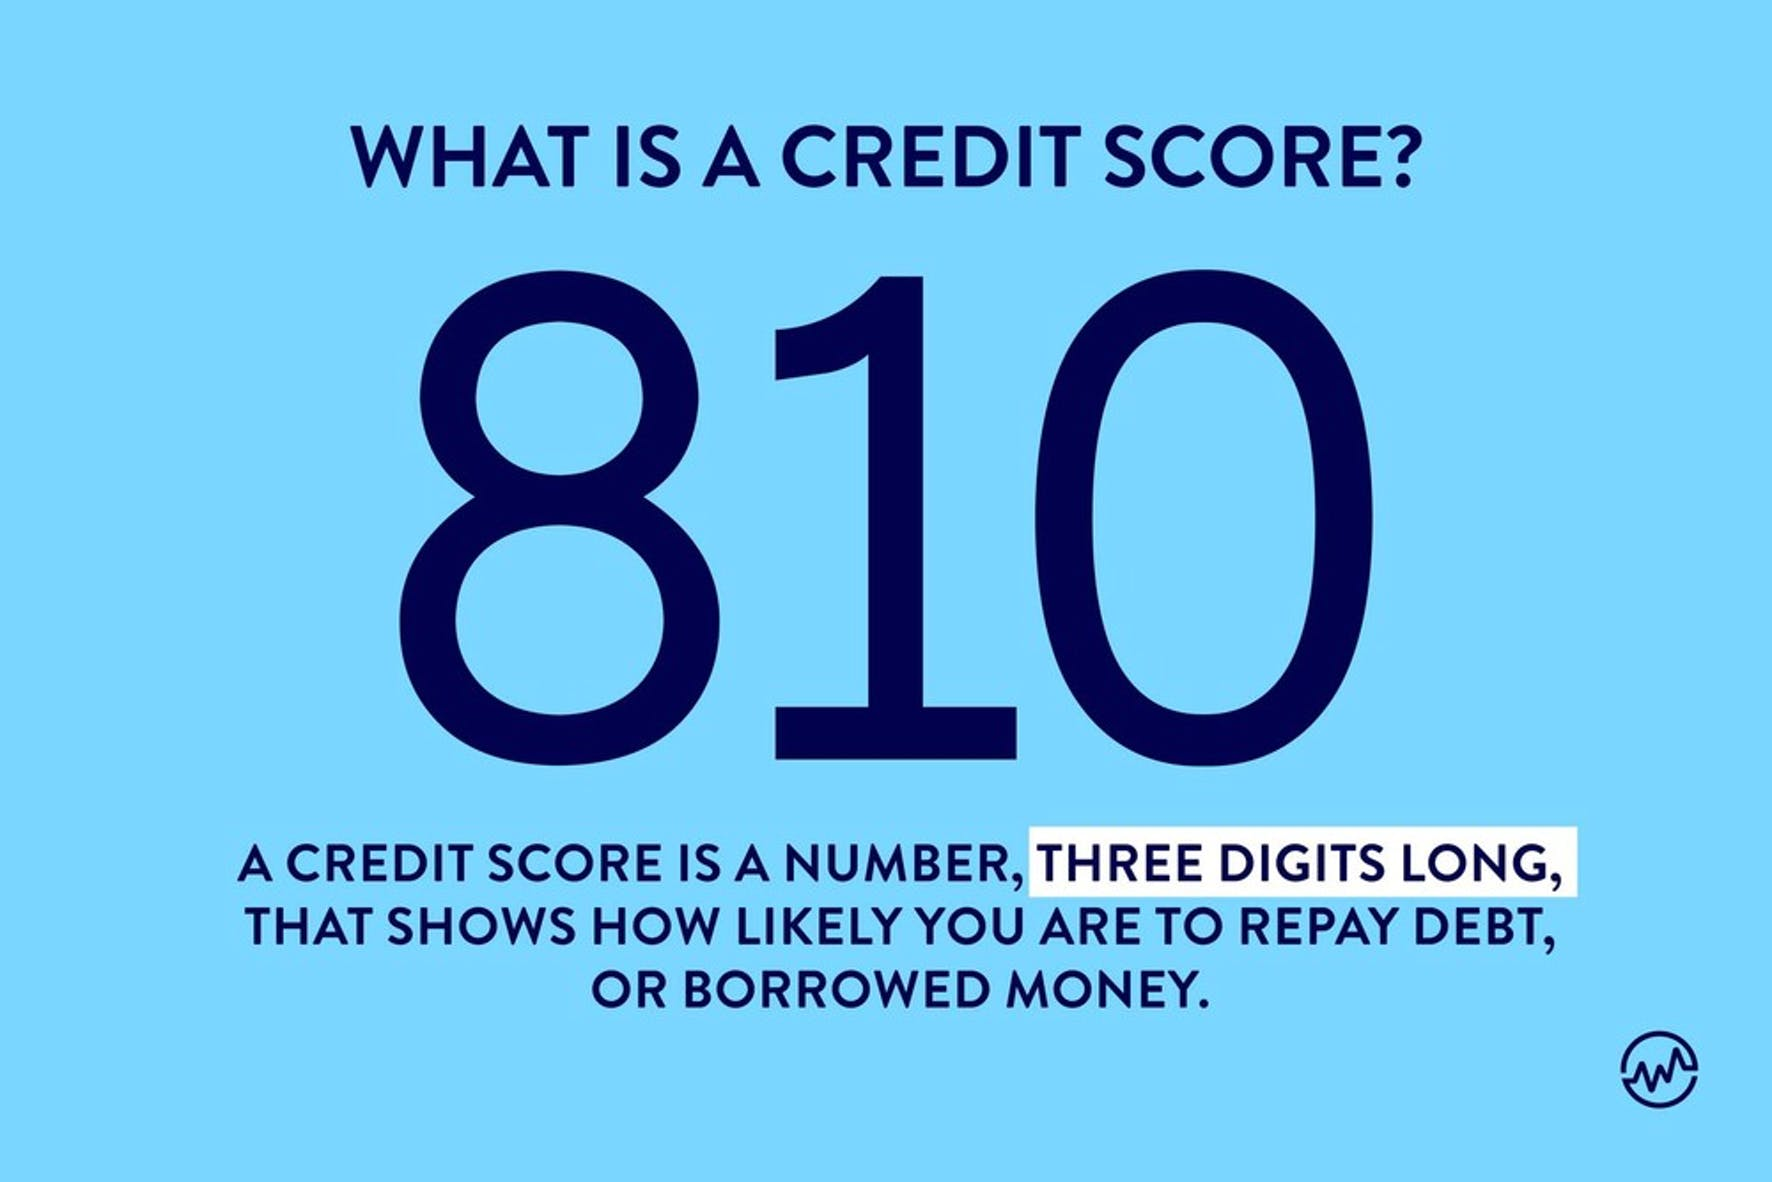 Defining what a credit score is on a blue background